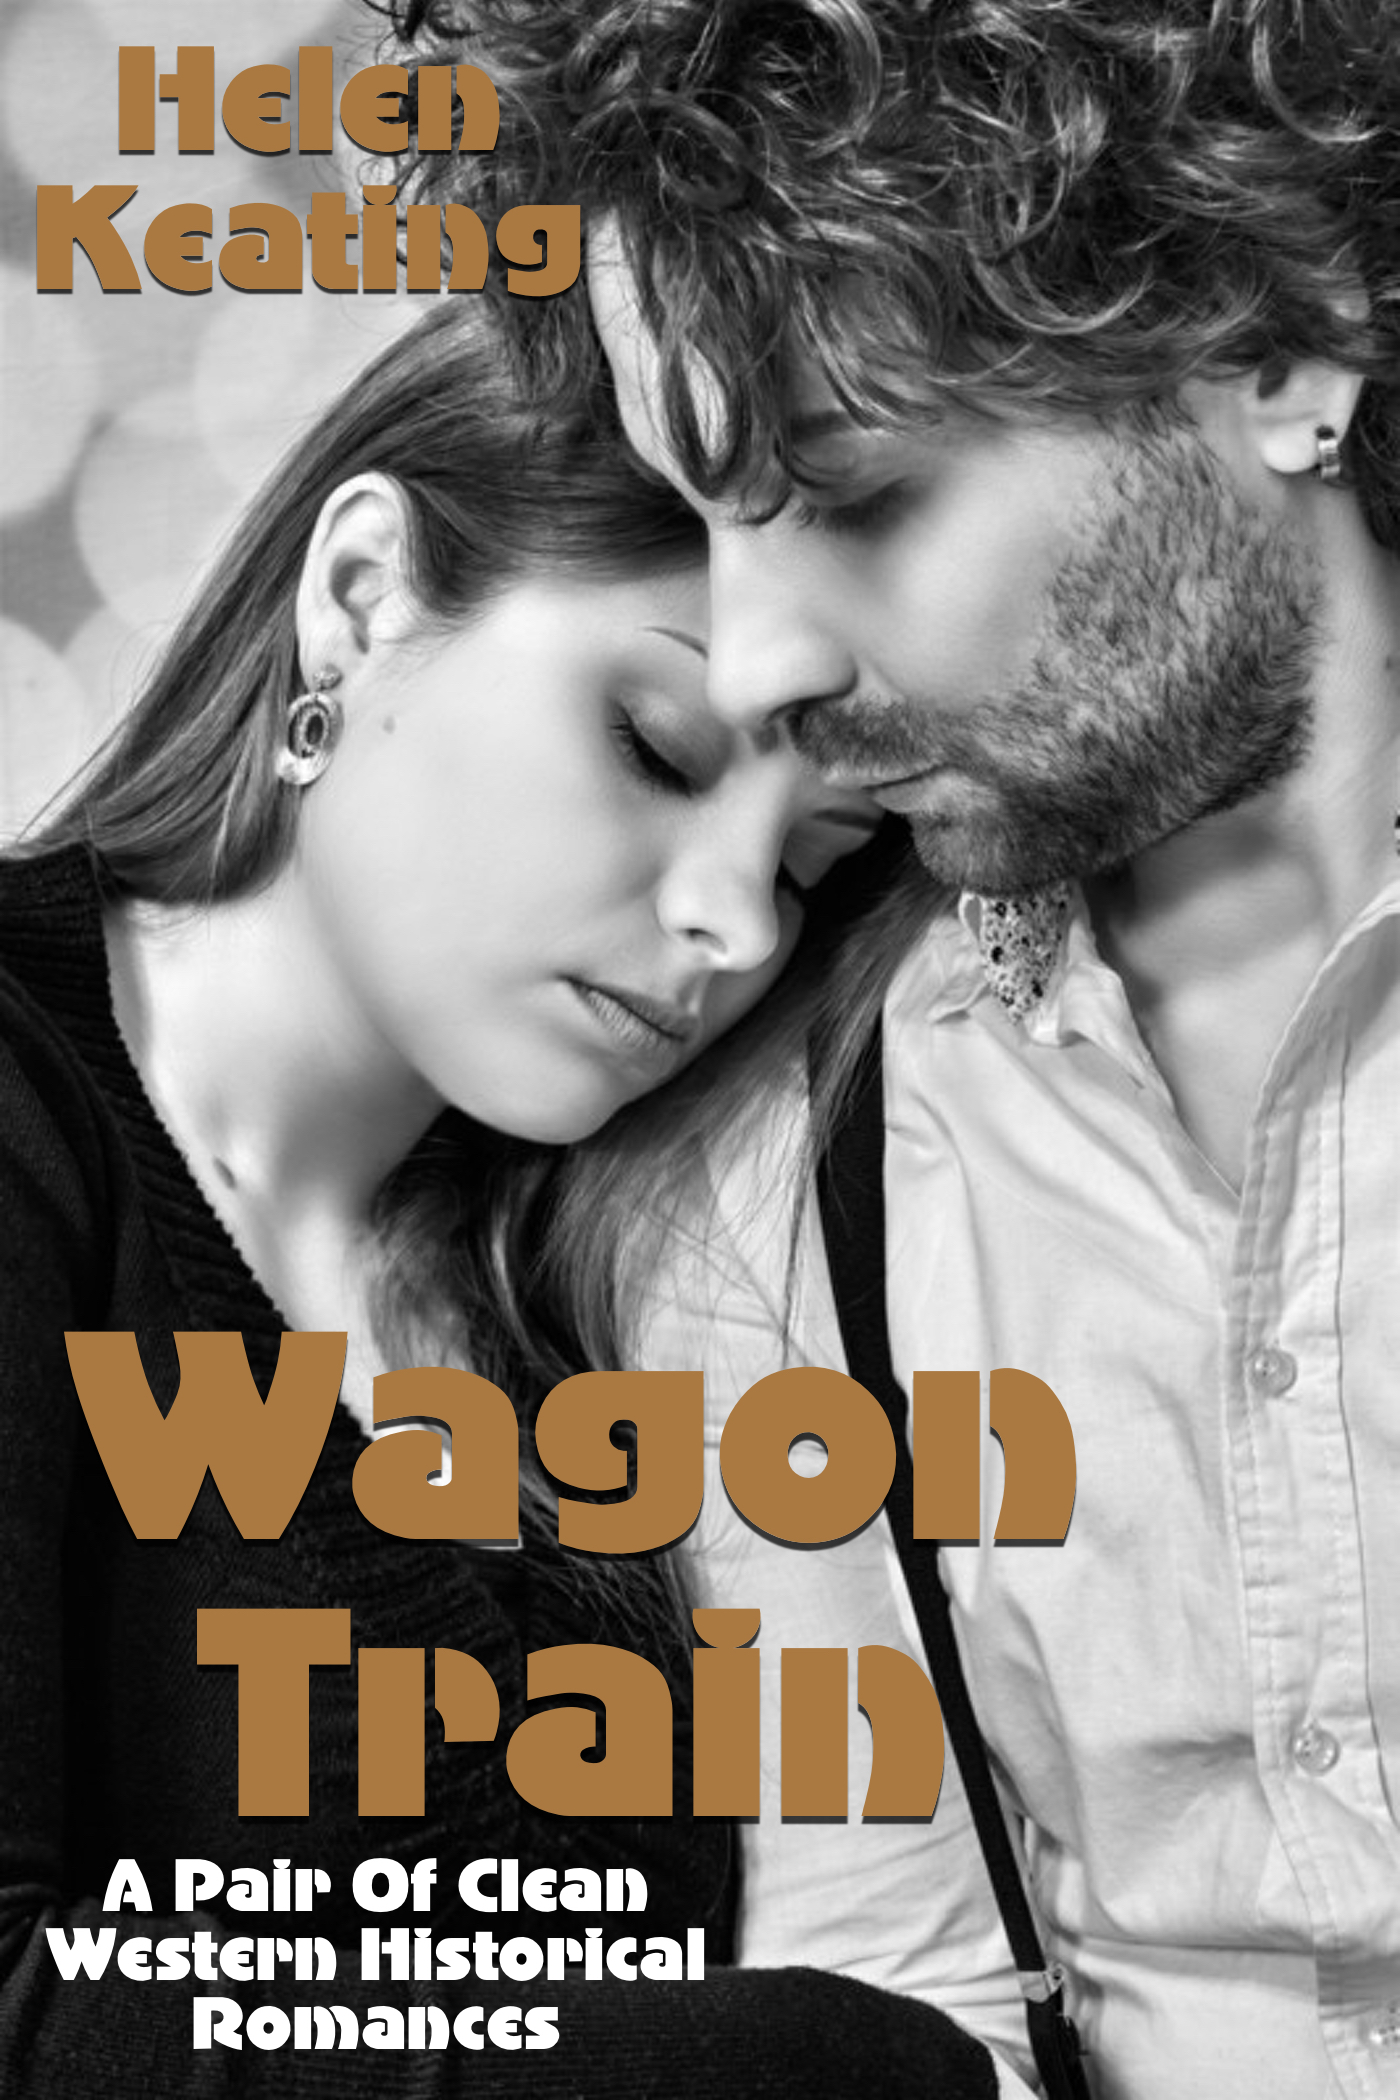 Wagon Train  by  Helen Keating